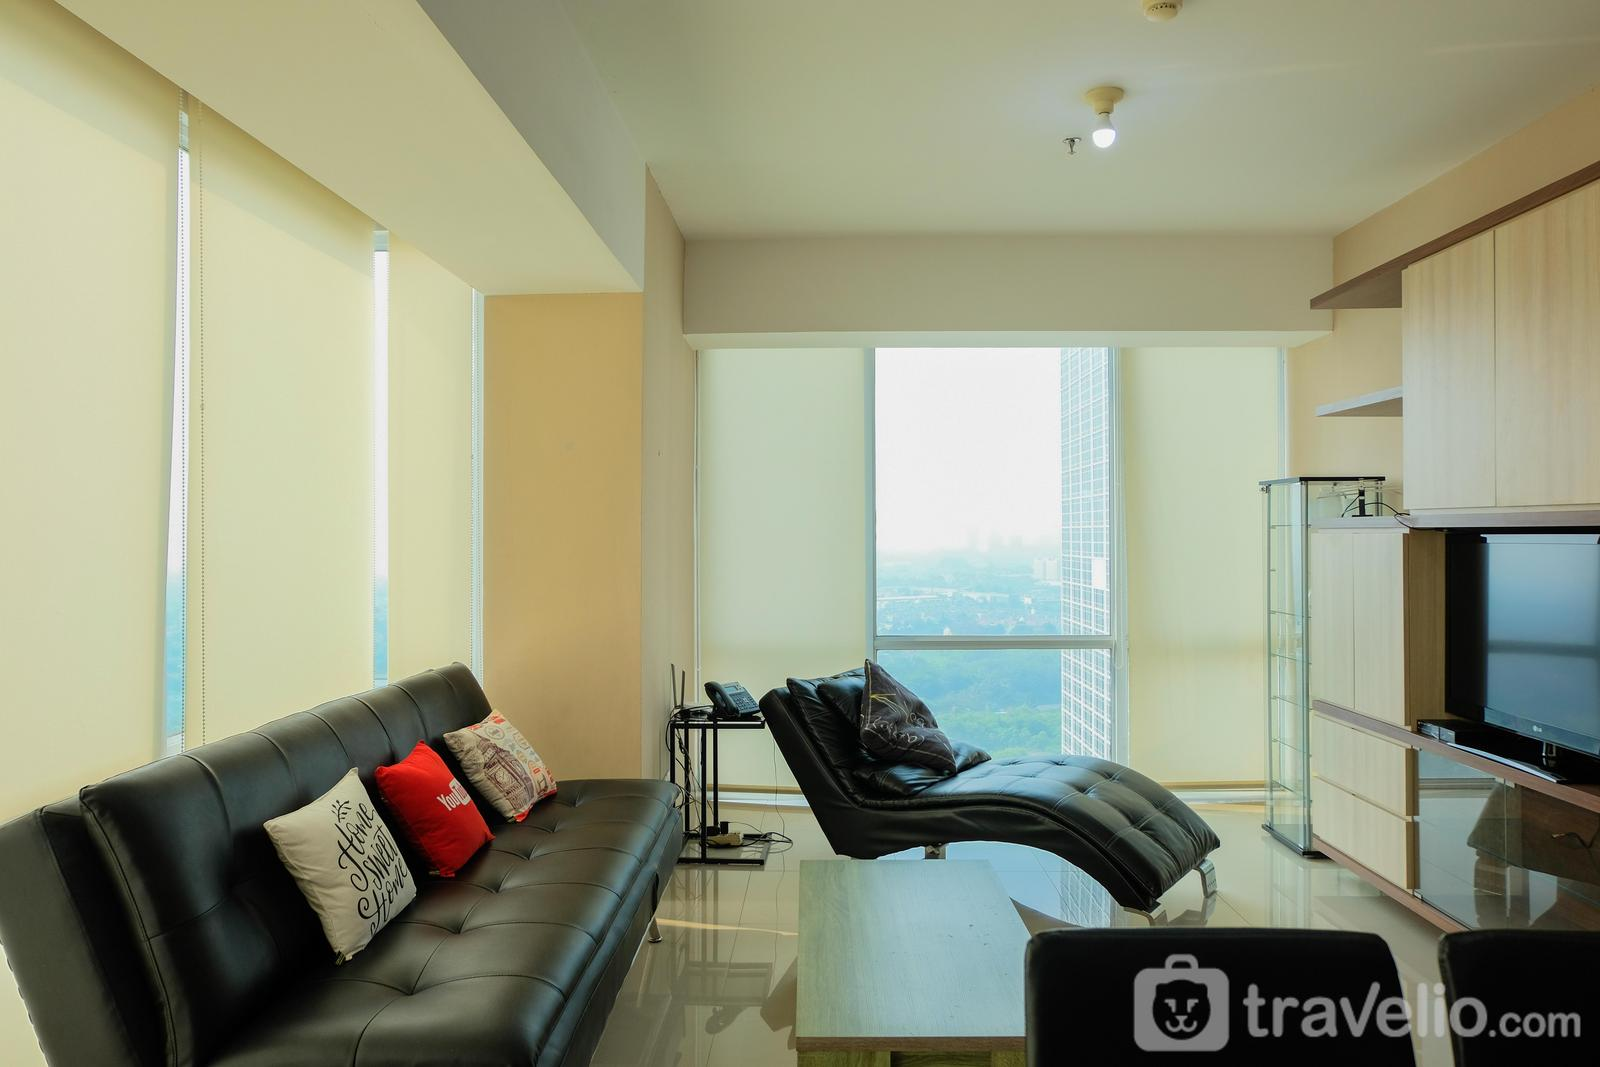 U Residence Apartment - Highest Value 2BR Apartment @ U Residence By Travelio